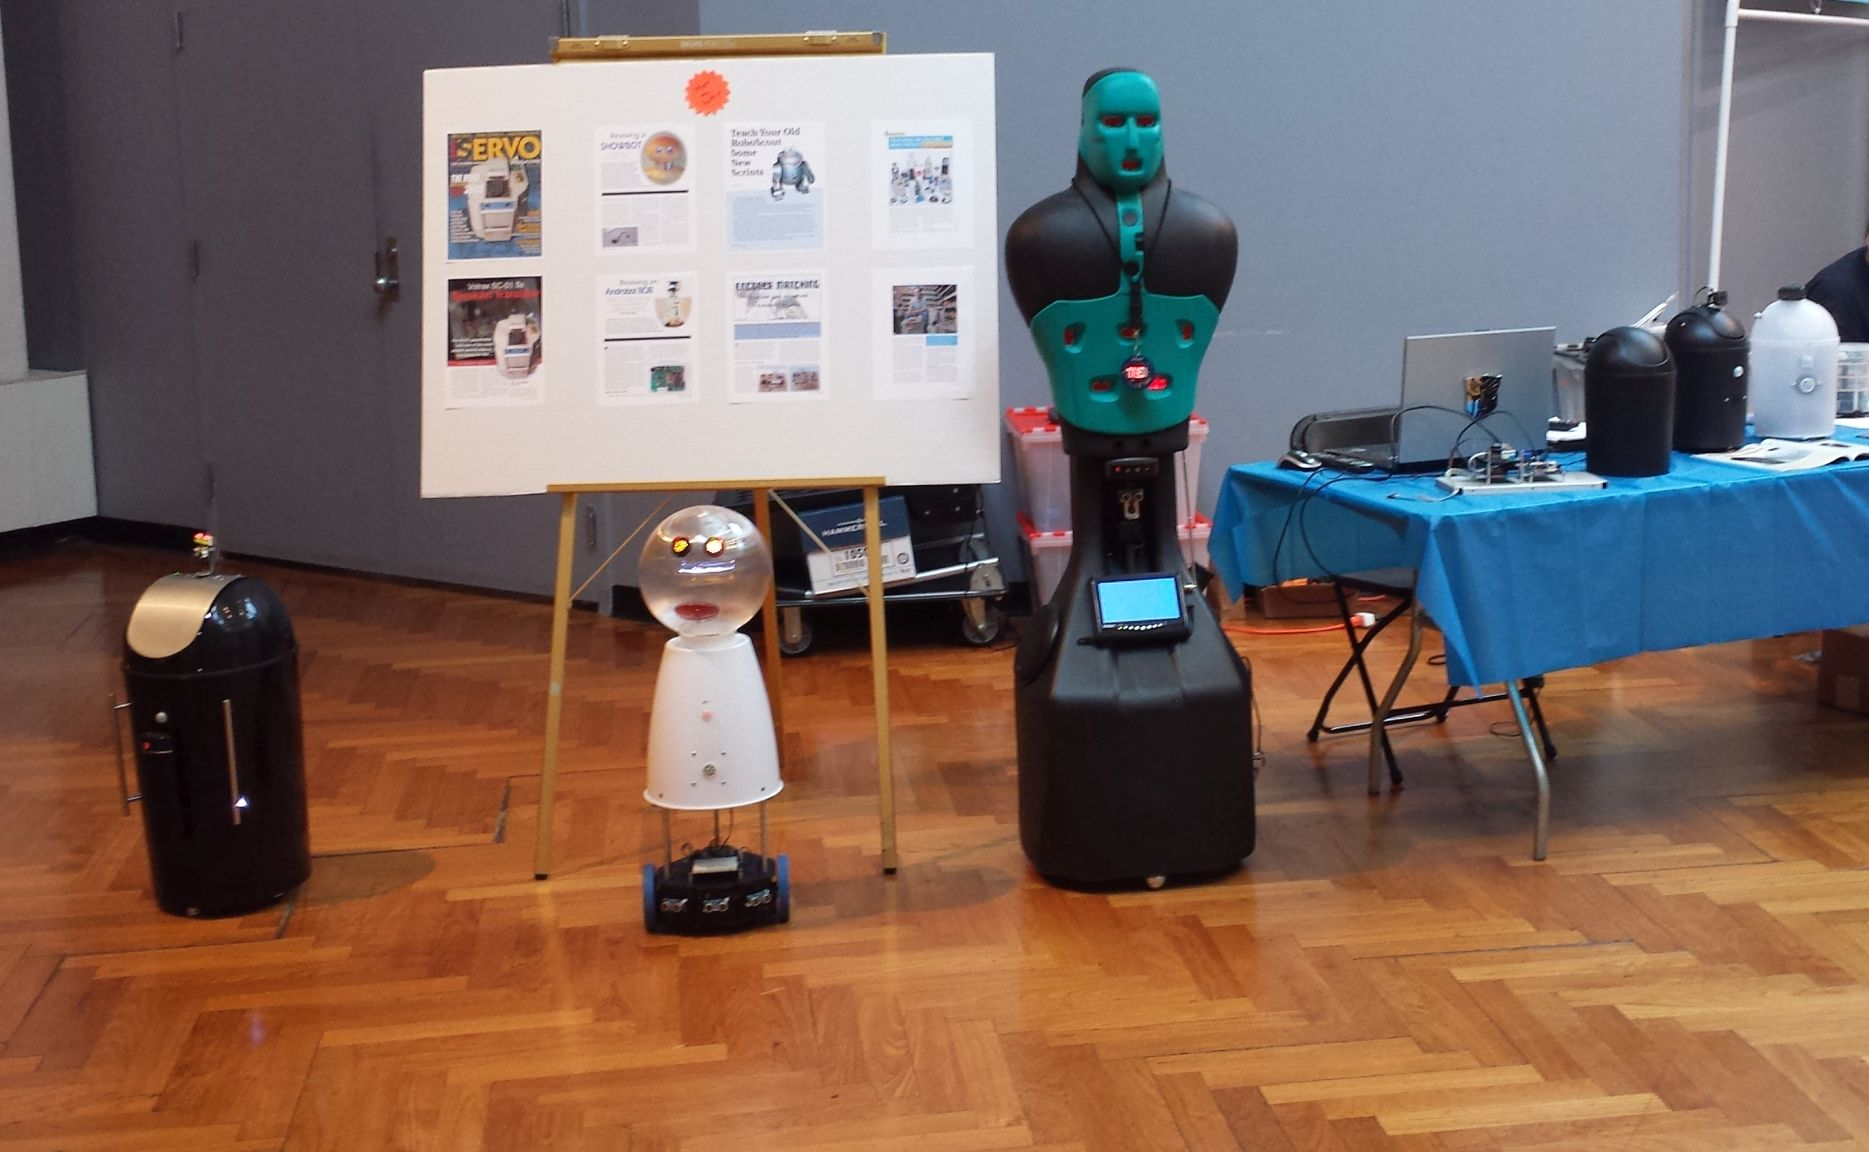 Robots at Henry Ford Maker Faire